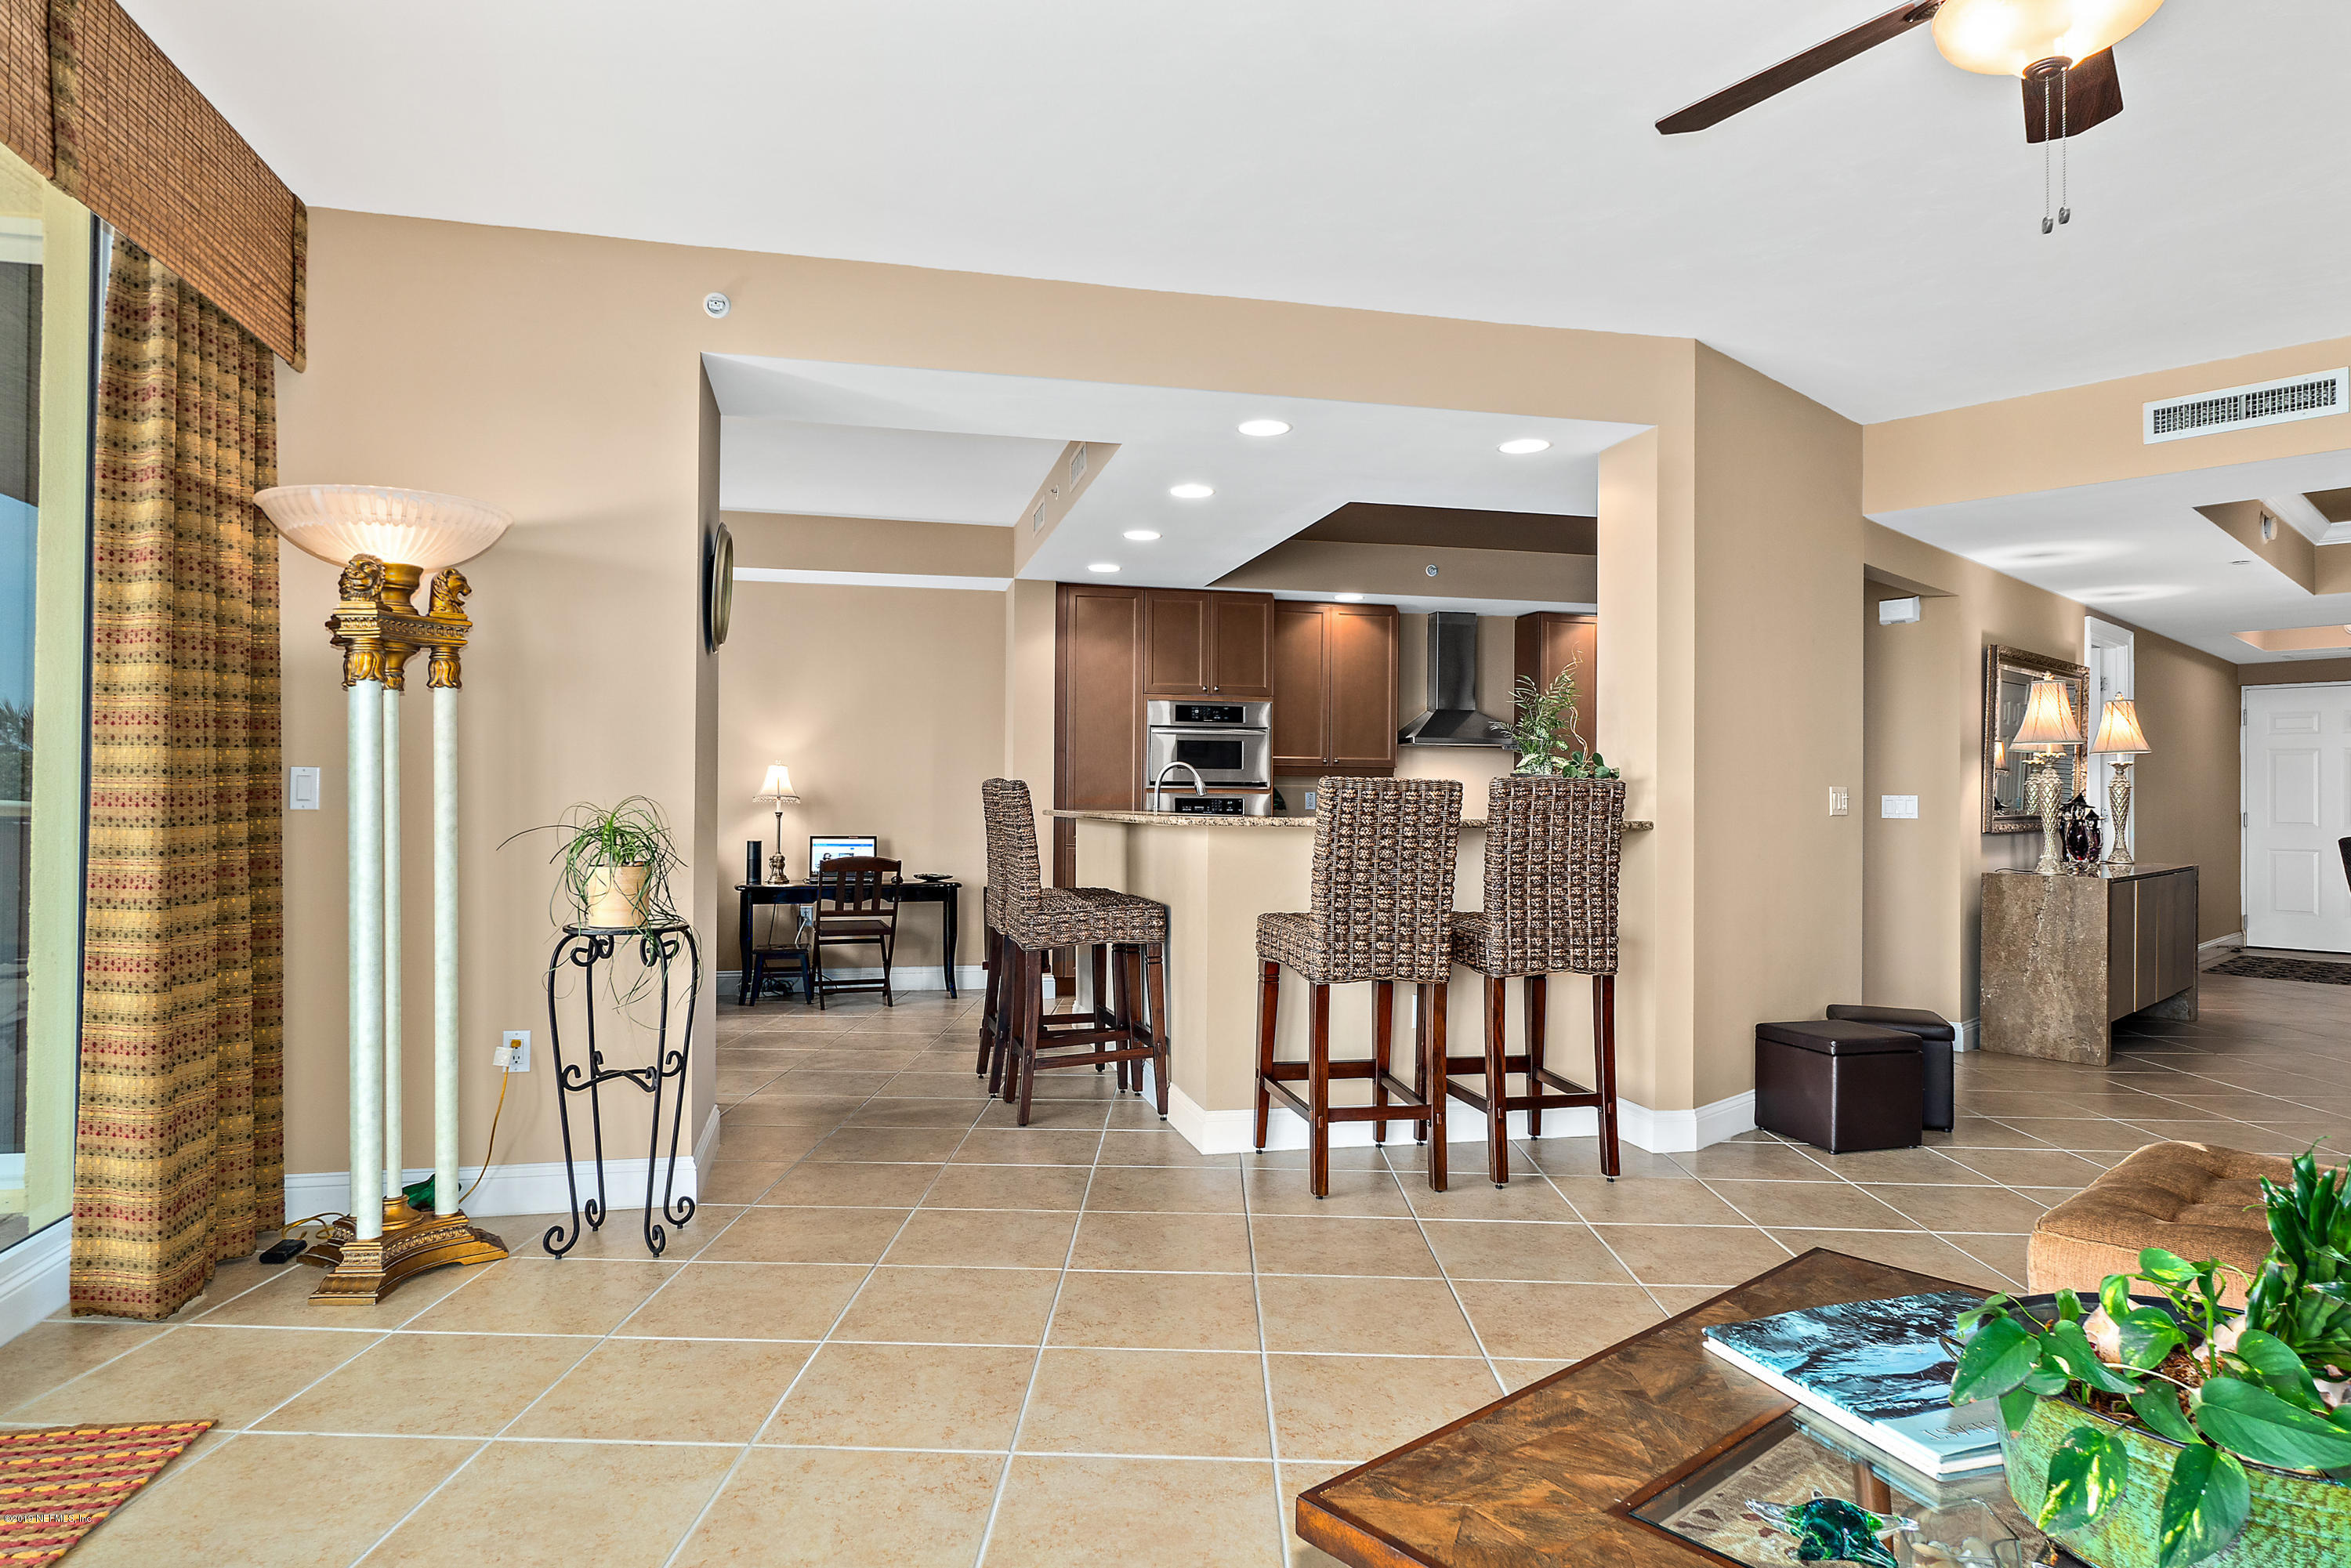 20 PORTO MAR, PALM COAST, FLORIDA 32137, 2 Bedrooms Bedrooms, ,2 BathroomsBathrooms,Condo,For sale,PORTO MAR,985414